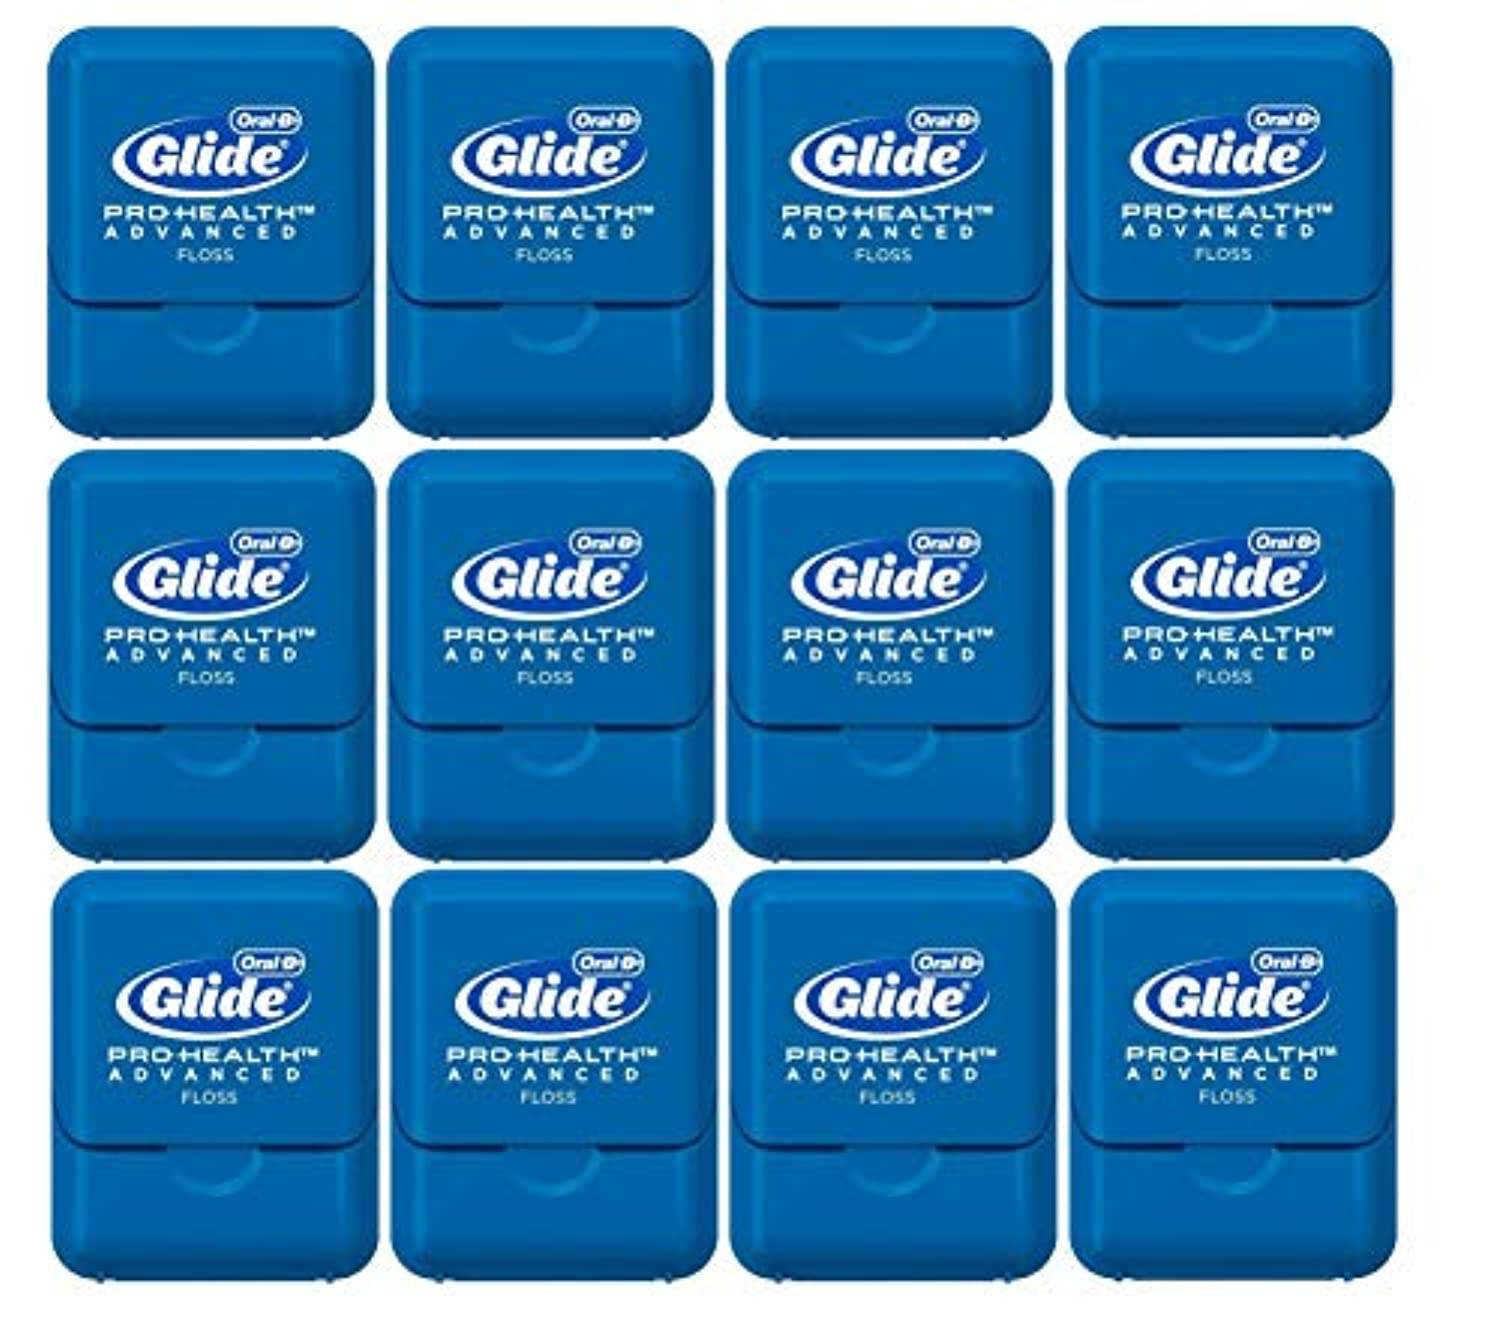 Glide Oral-B Pro-Health Advanced Floss, Small Size 4 meters (4.3 yards) - Pack of 12